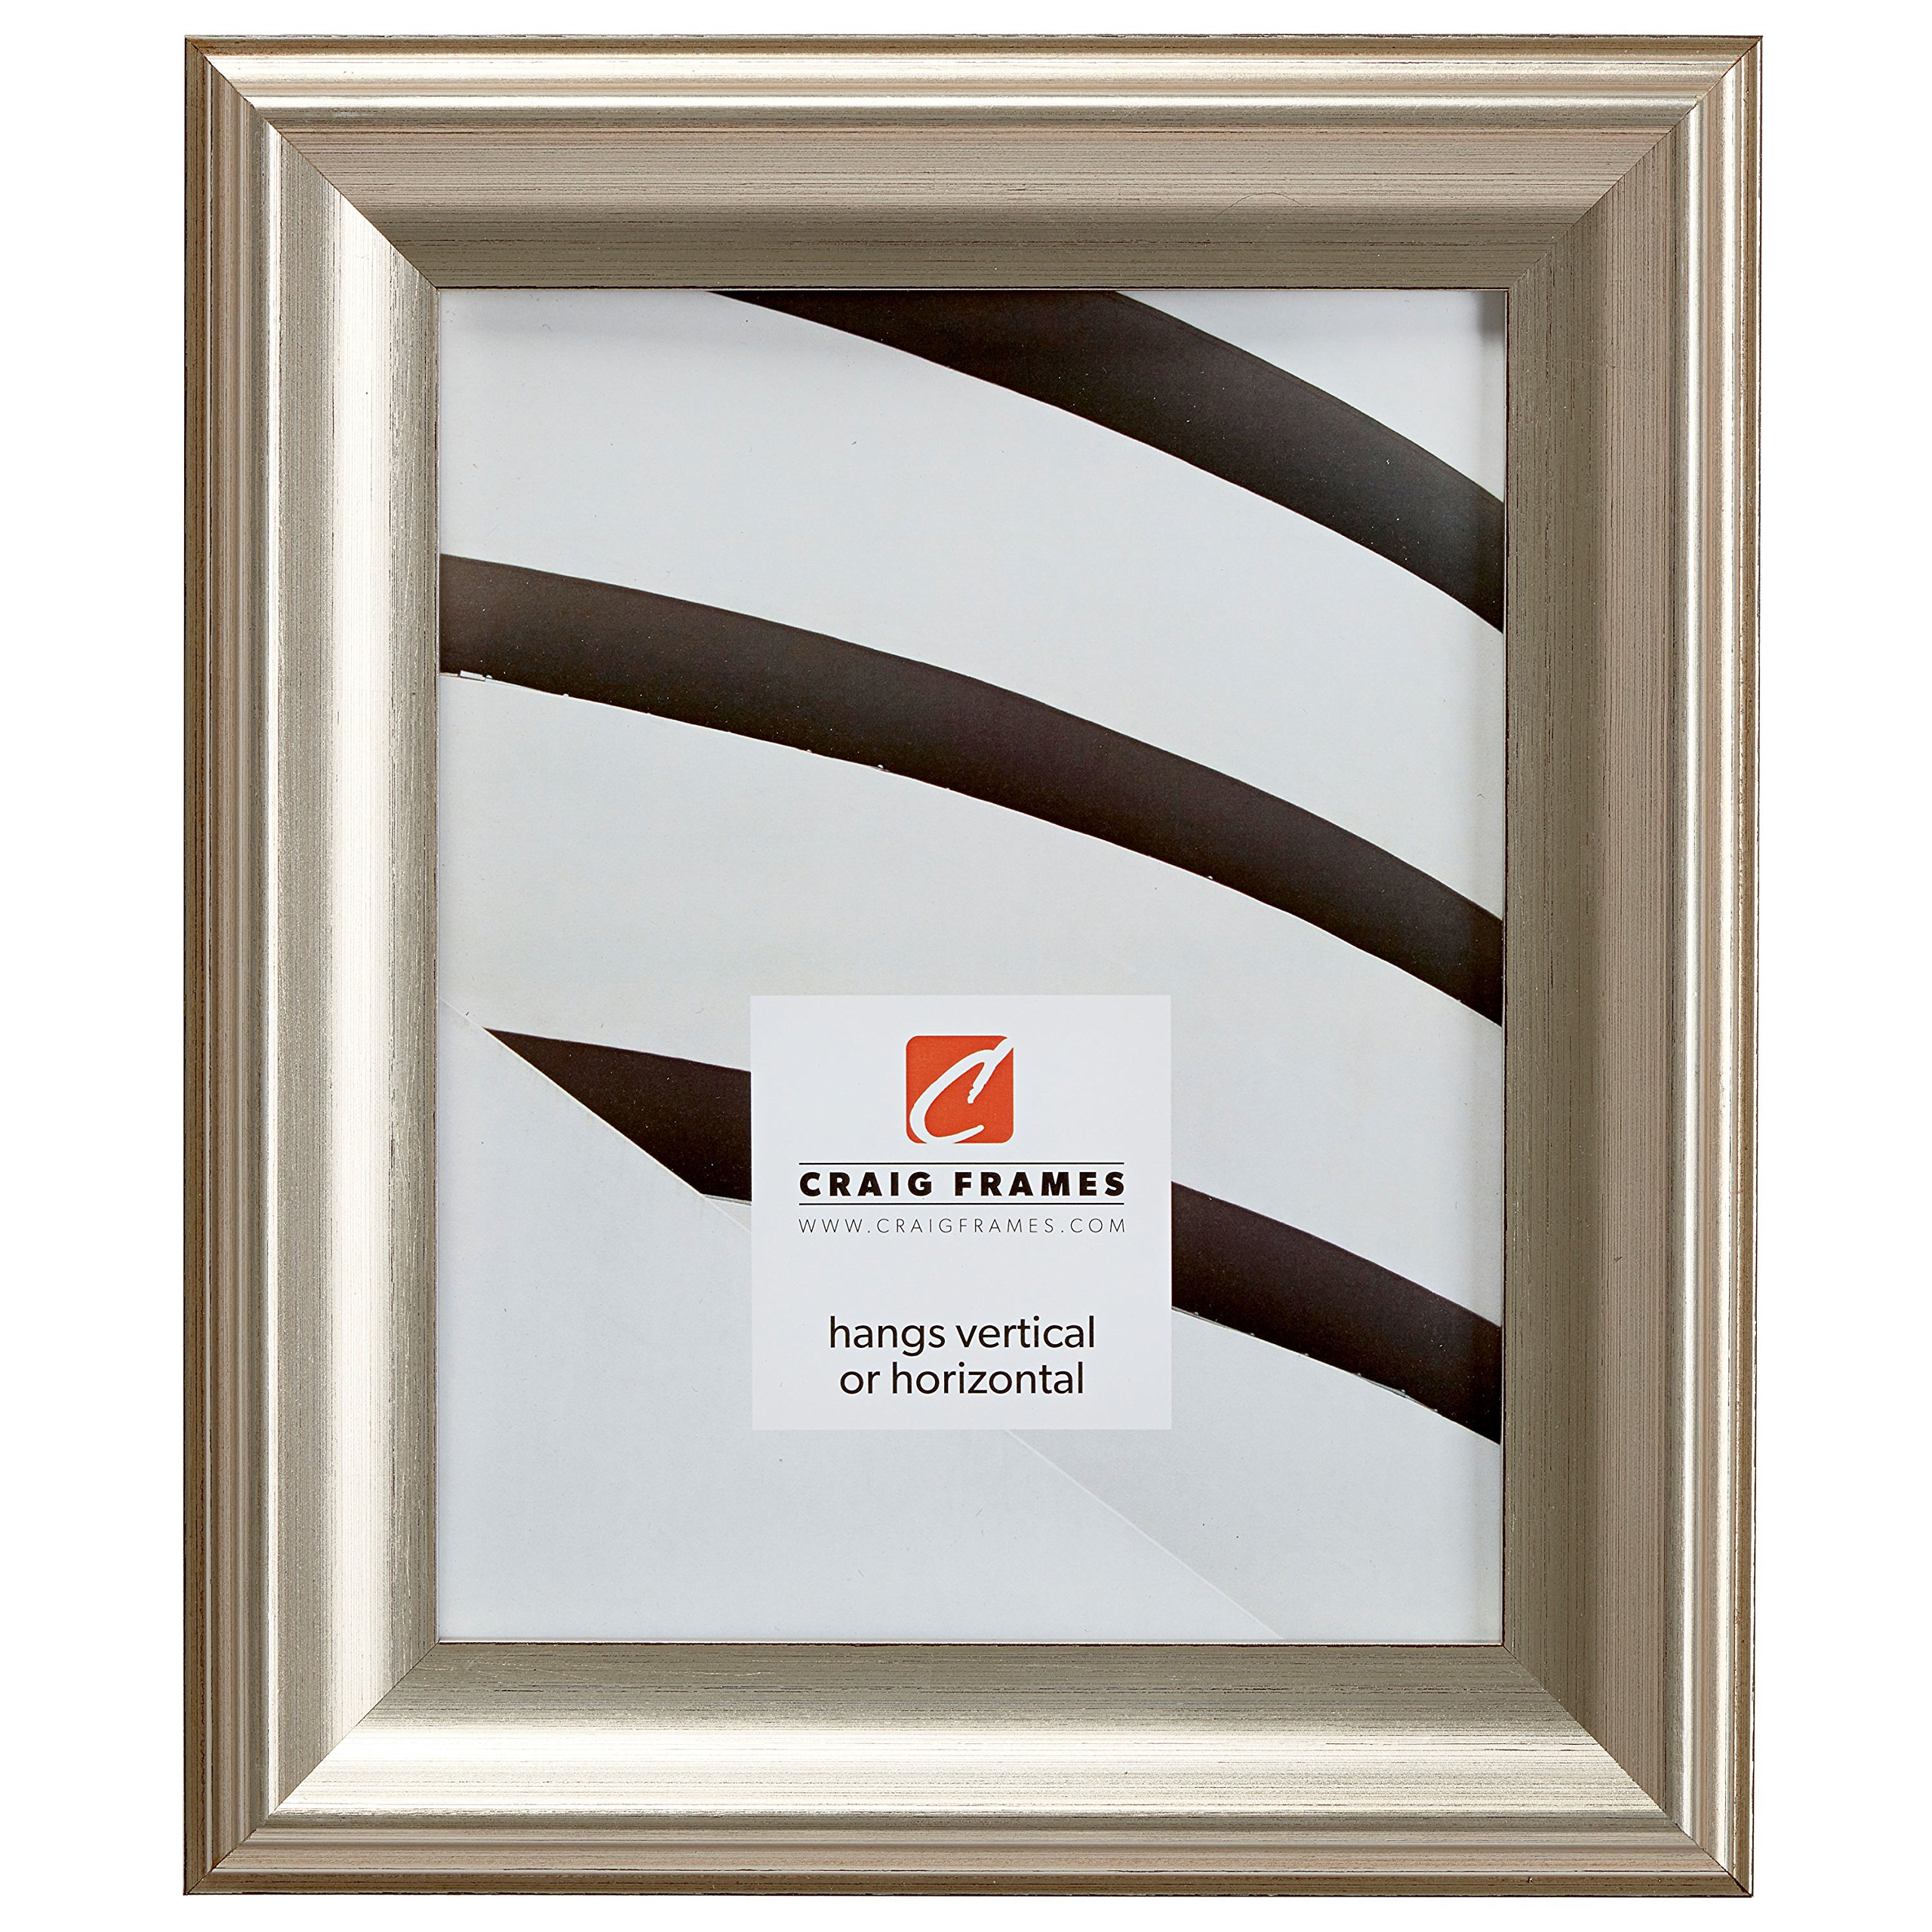 13x17 Picture / Poster Frame, Smooth Brushed Finish, 1.82'' Wide, Silver and Black (9005)